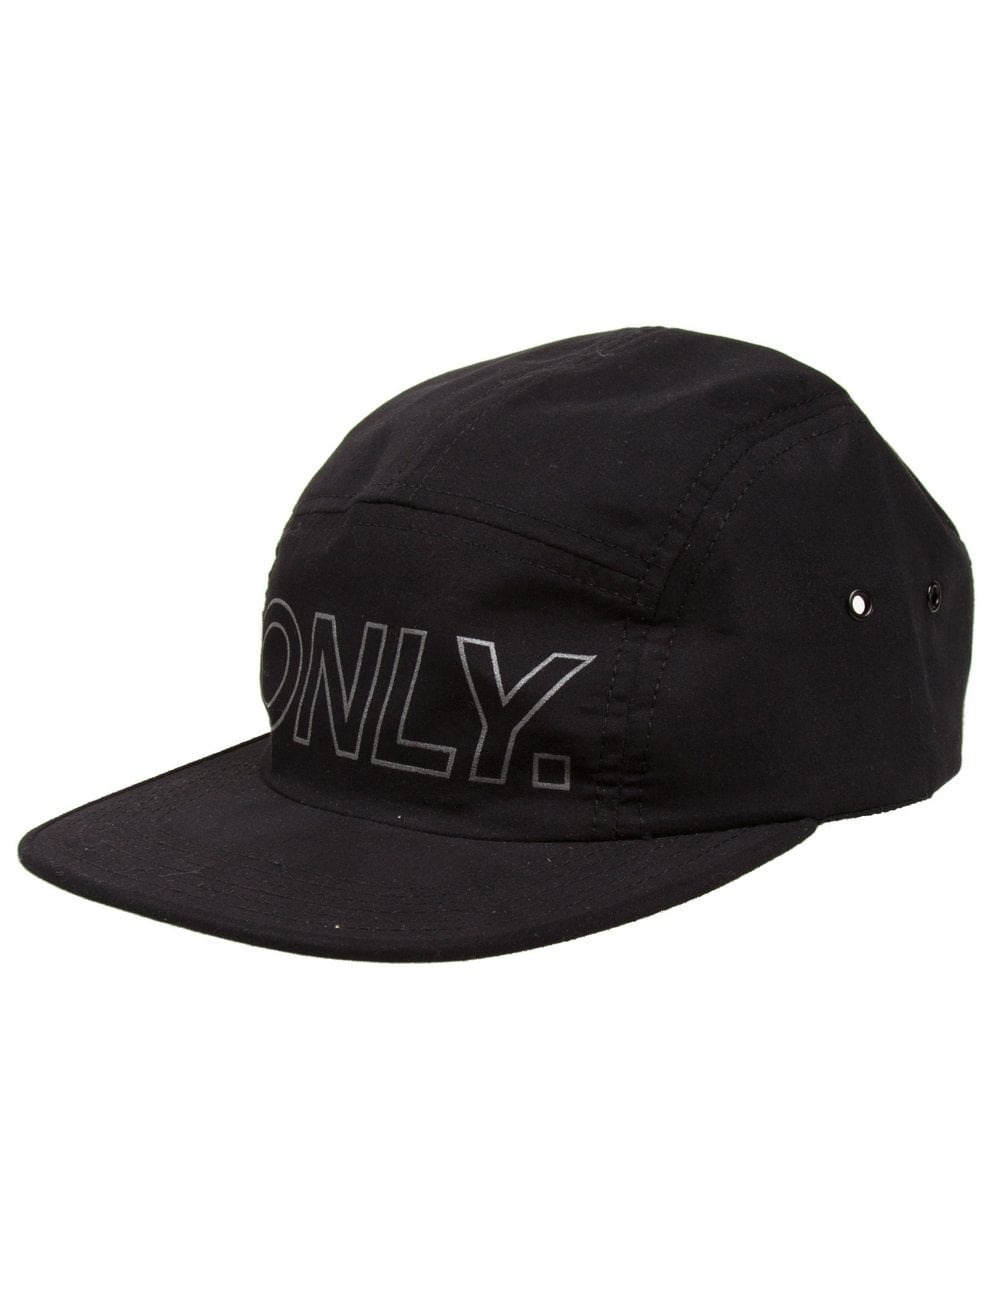 360ecd44229 Only NY Clothing Reflective Logo 5 Panel Hat - Black - Accessories ...